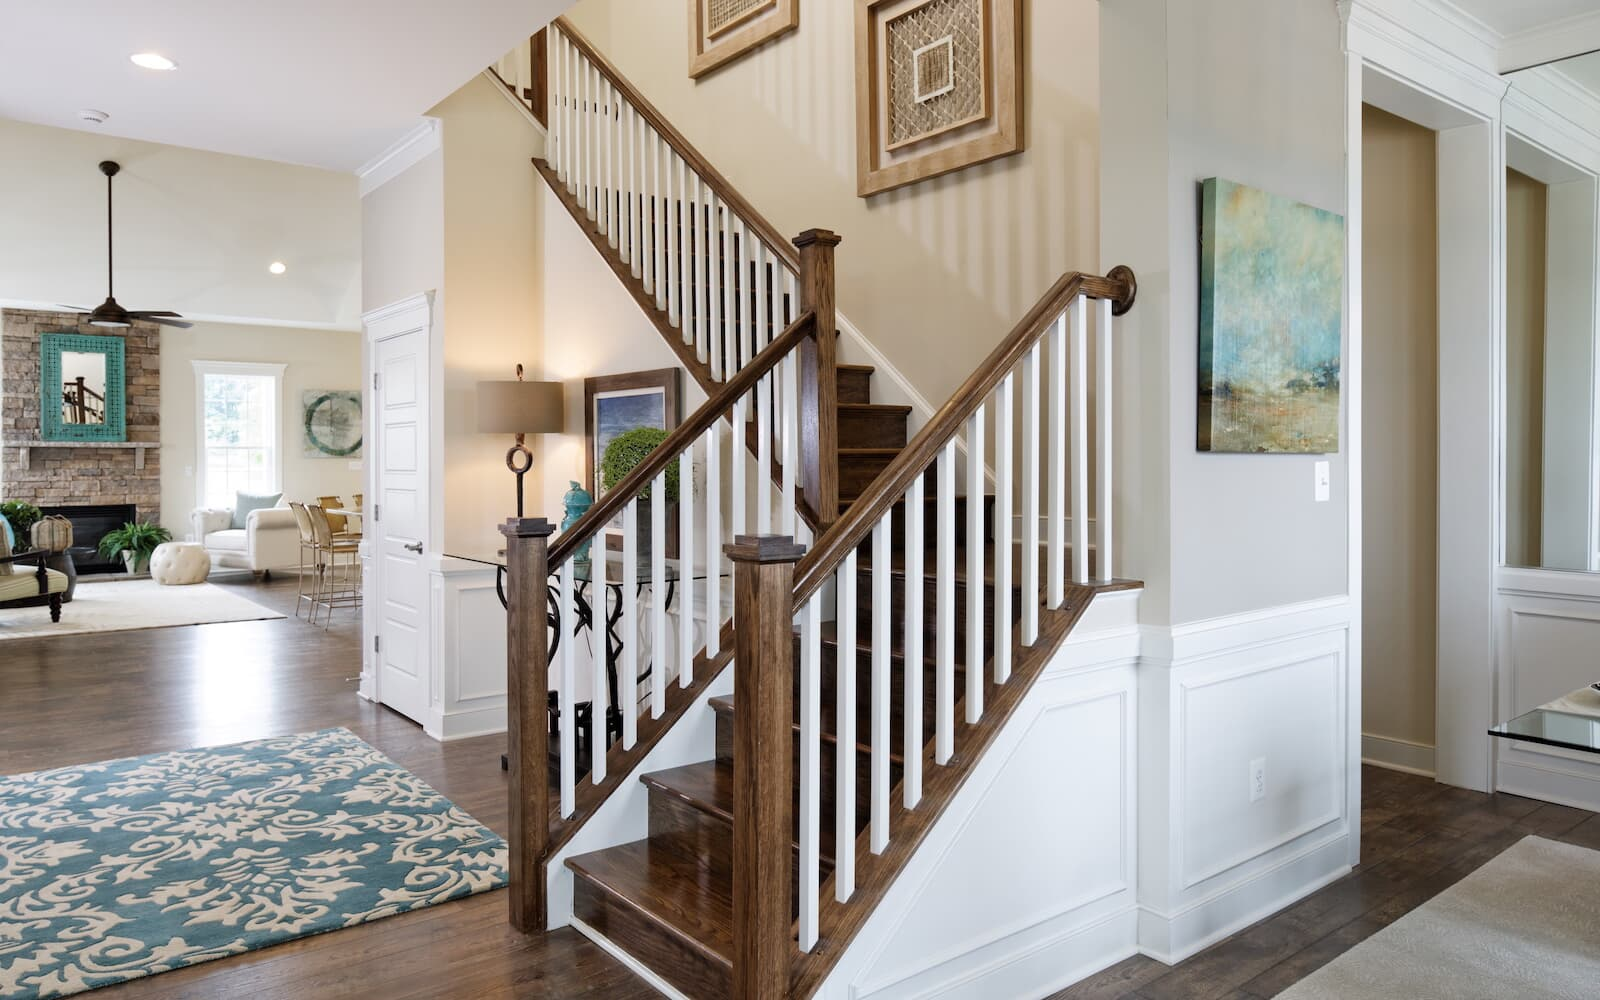 Pearson-staircase-single-family-homes-bridgeville-de-active-adult-heritage-shores-brookfield-residential